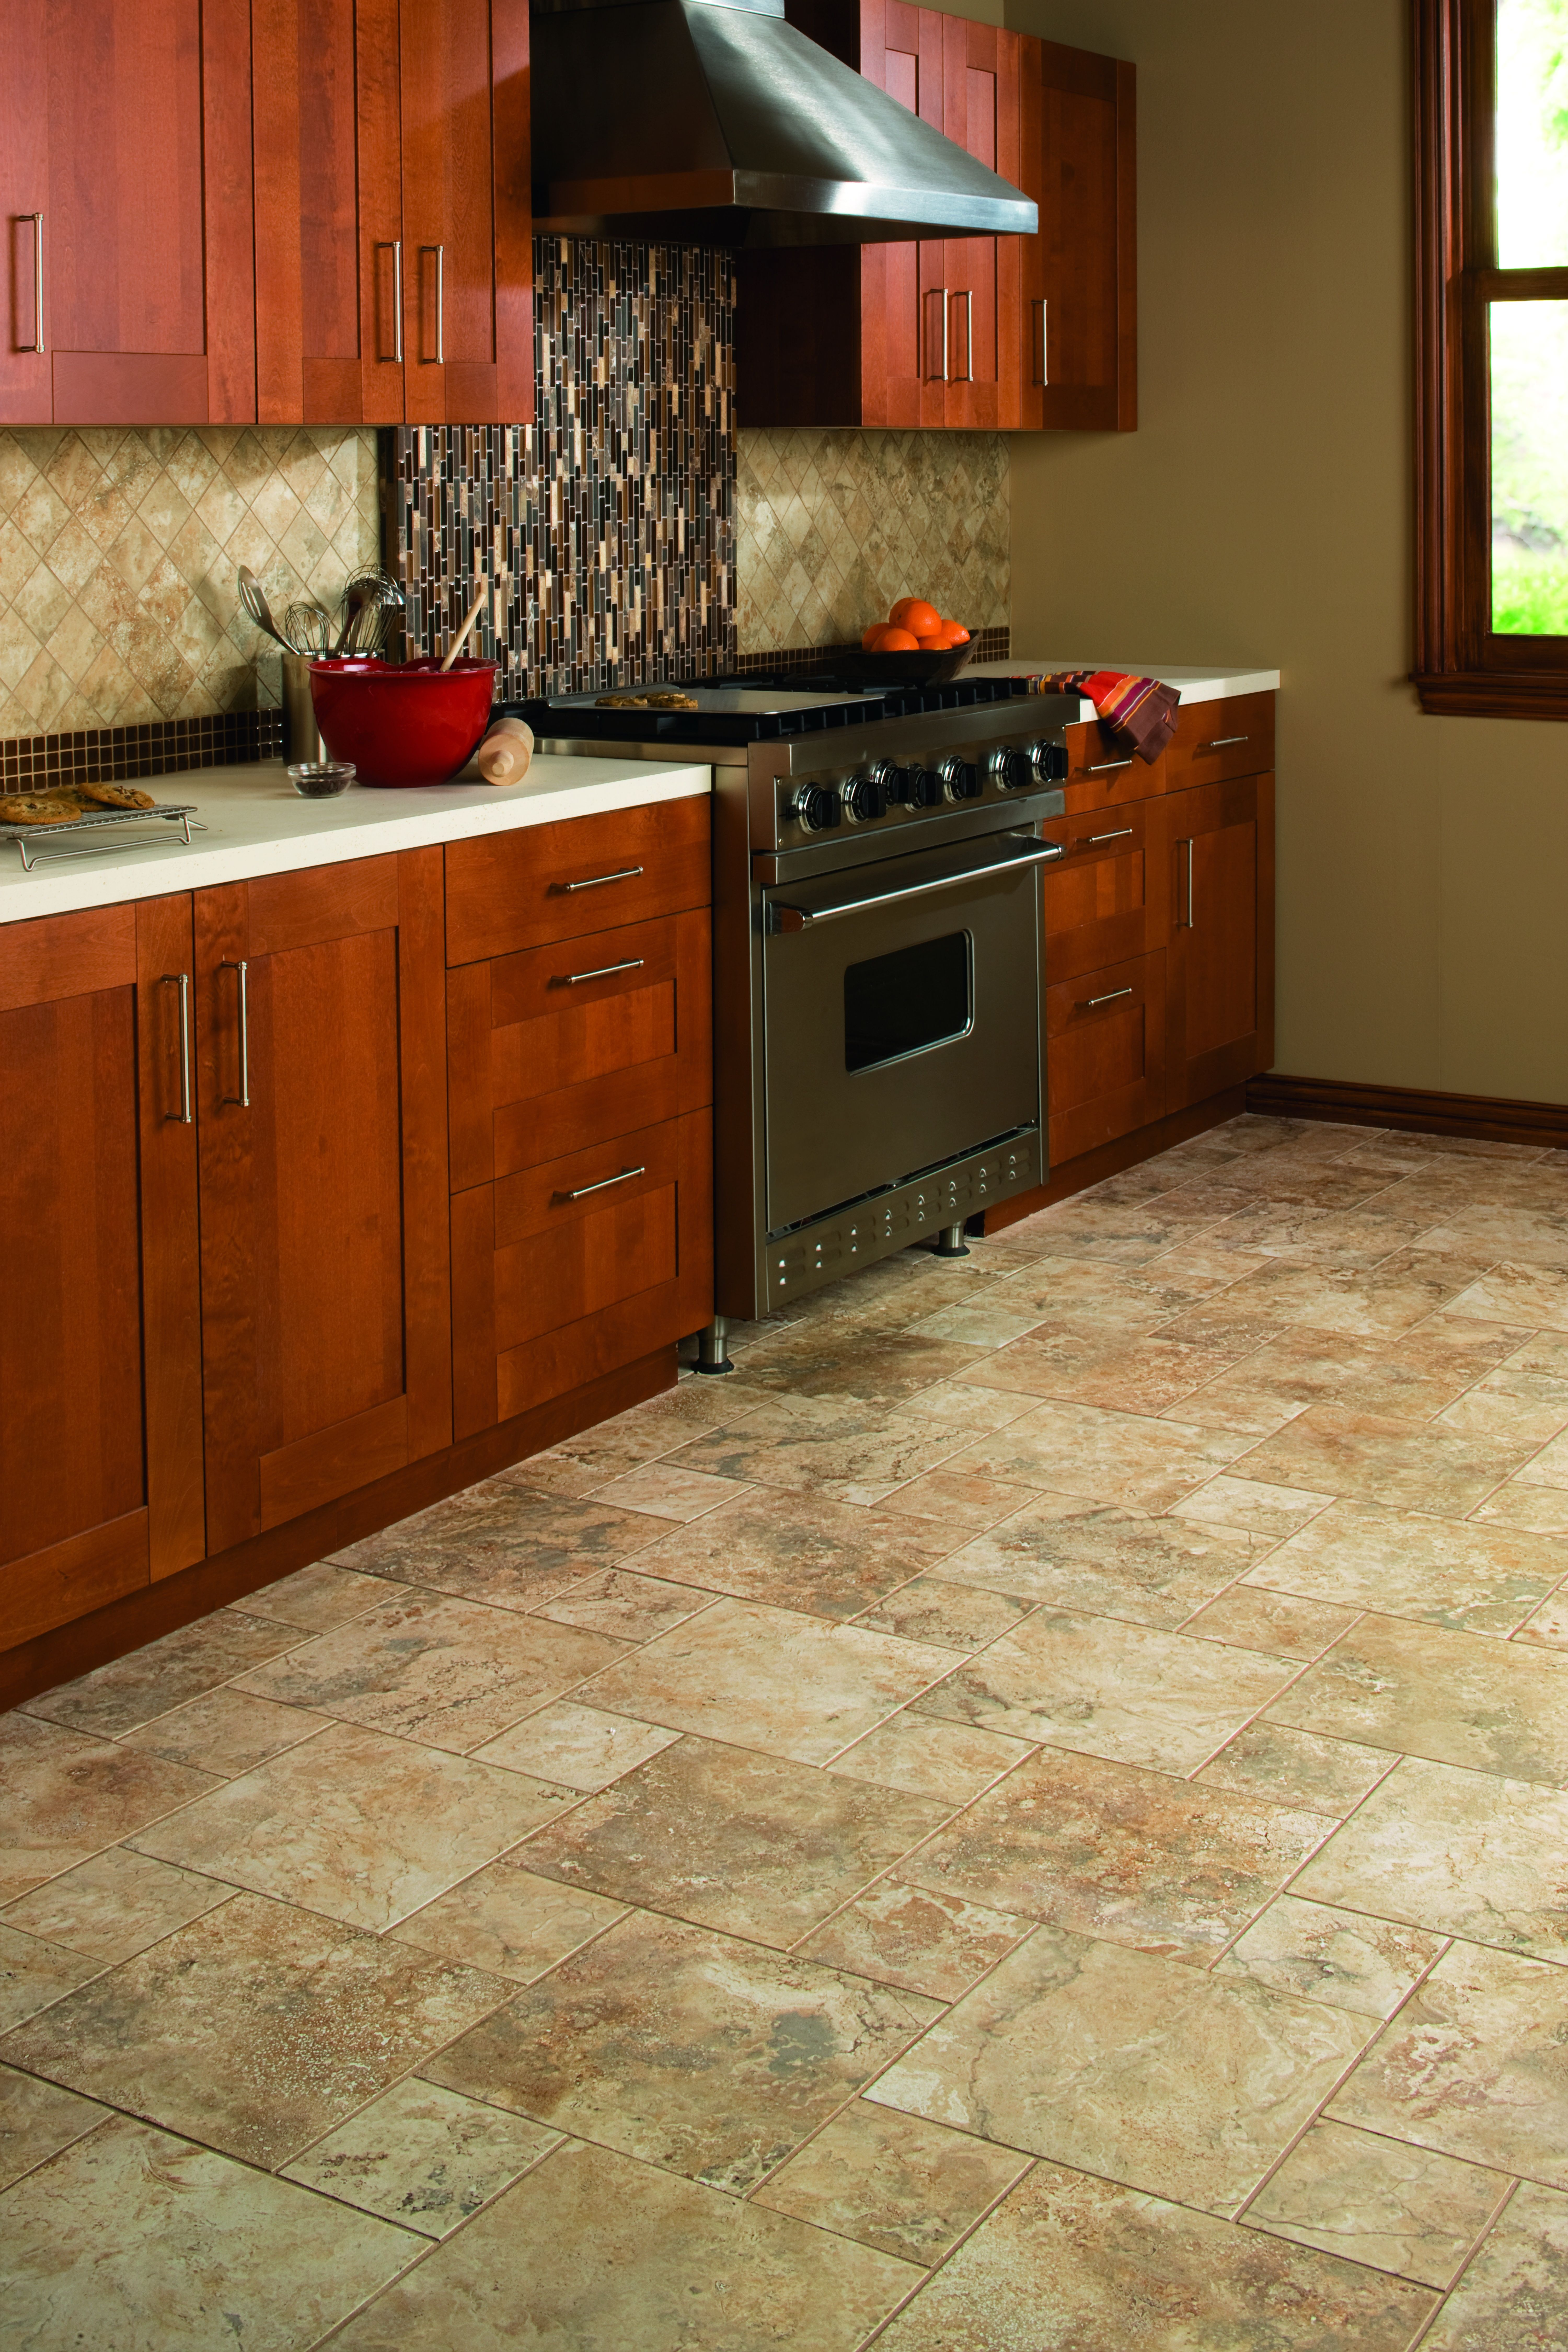 Mohawk industries 15212 almond spice almond spice ceramic floor mohawk industries 15212 almond spice almond spice ceramic floor tile 20 inch x 20 inch 1627 sf carton floormall doublecrazyfo Image collections